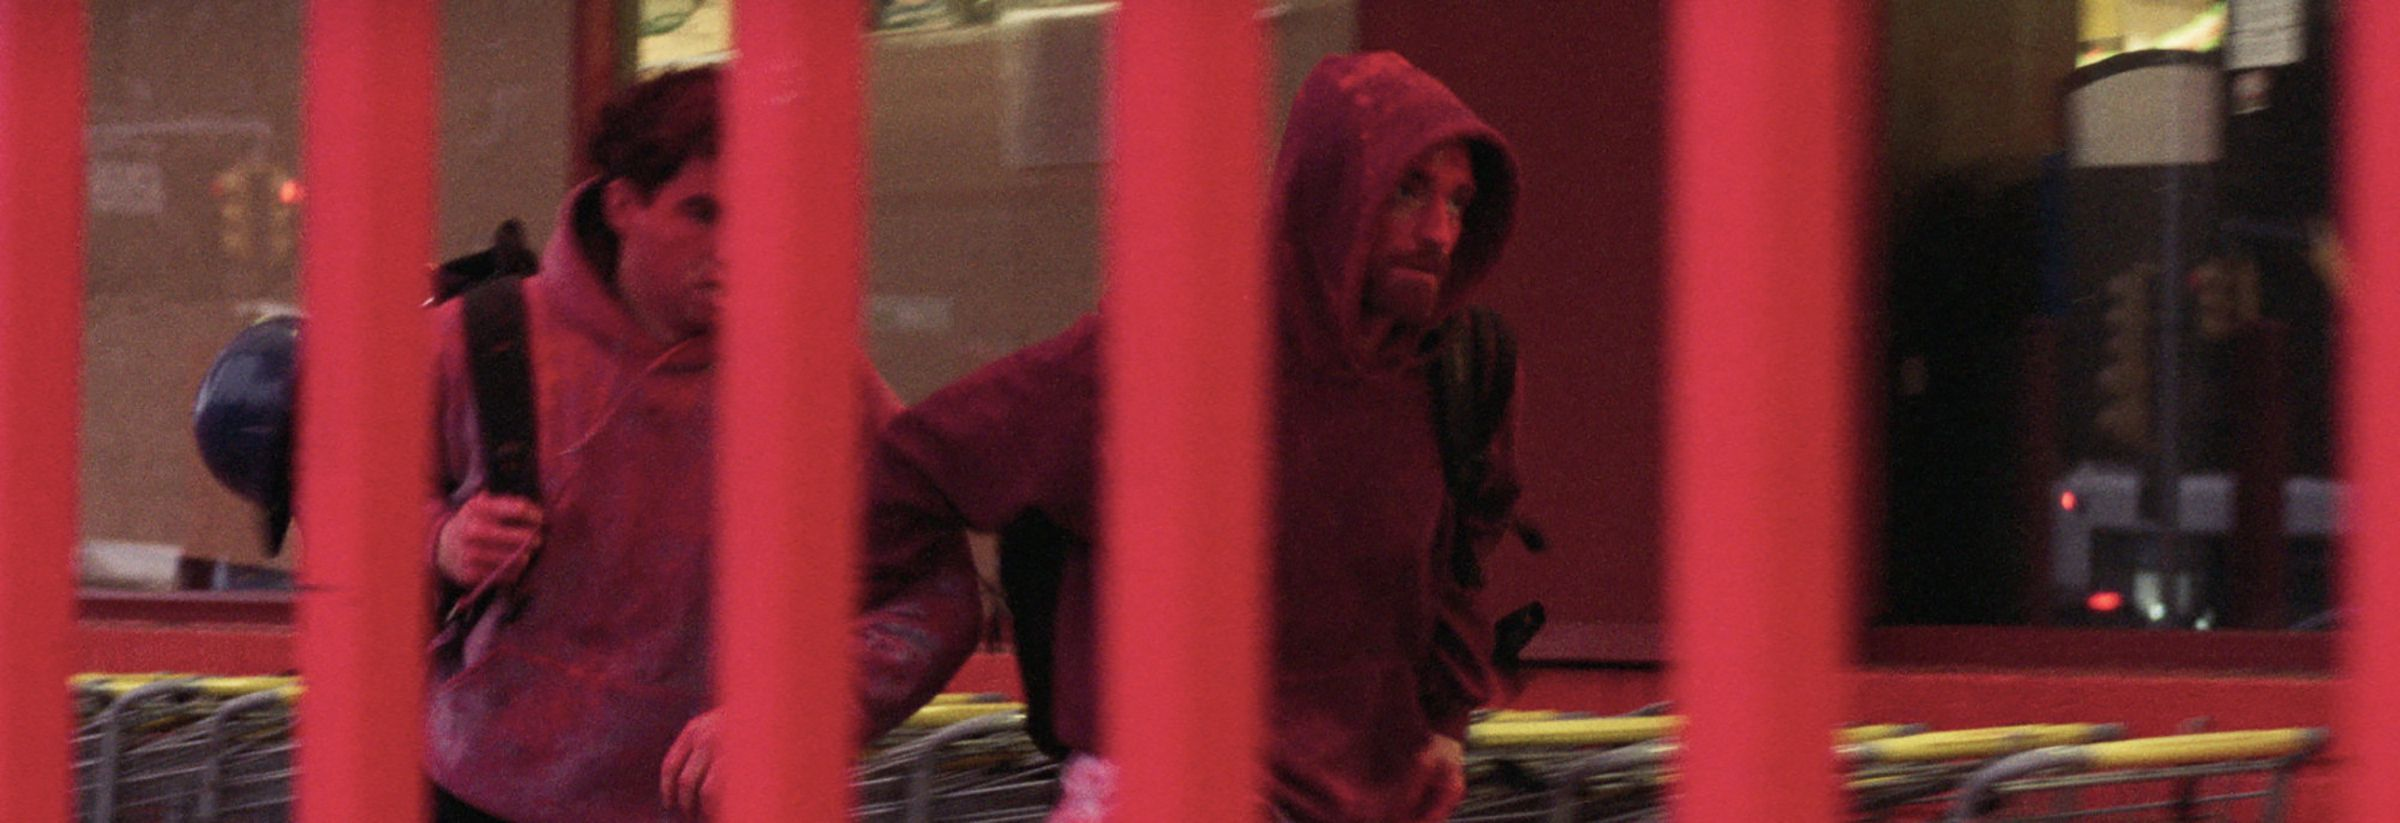 Safdie Brothers' Good Time, with Robert Pattinson, Gets New Trailer and Poster